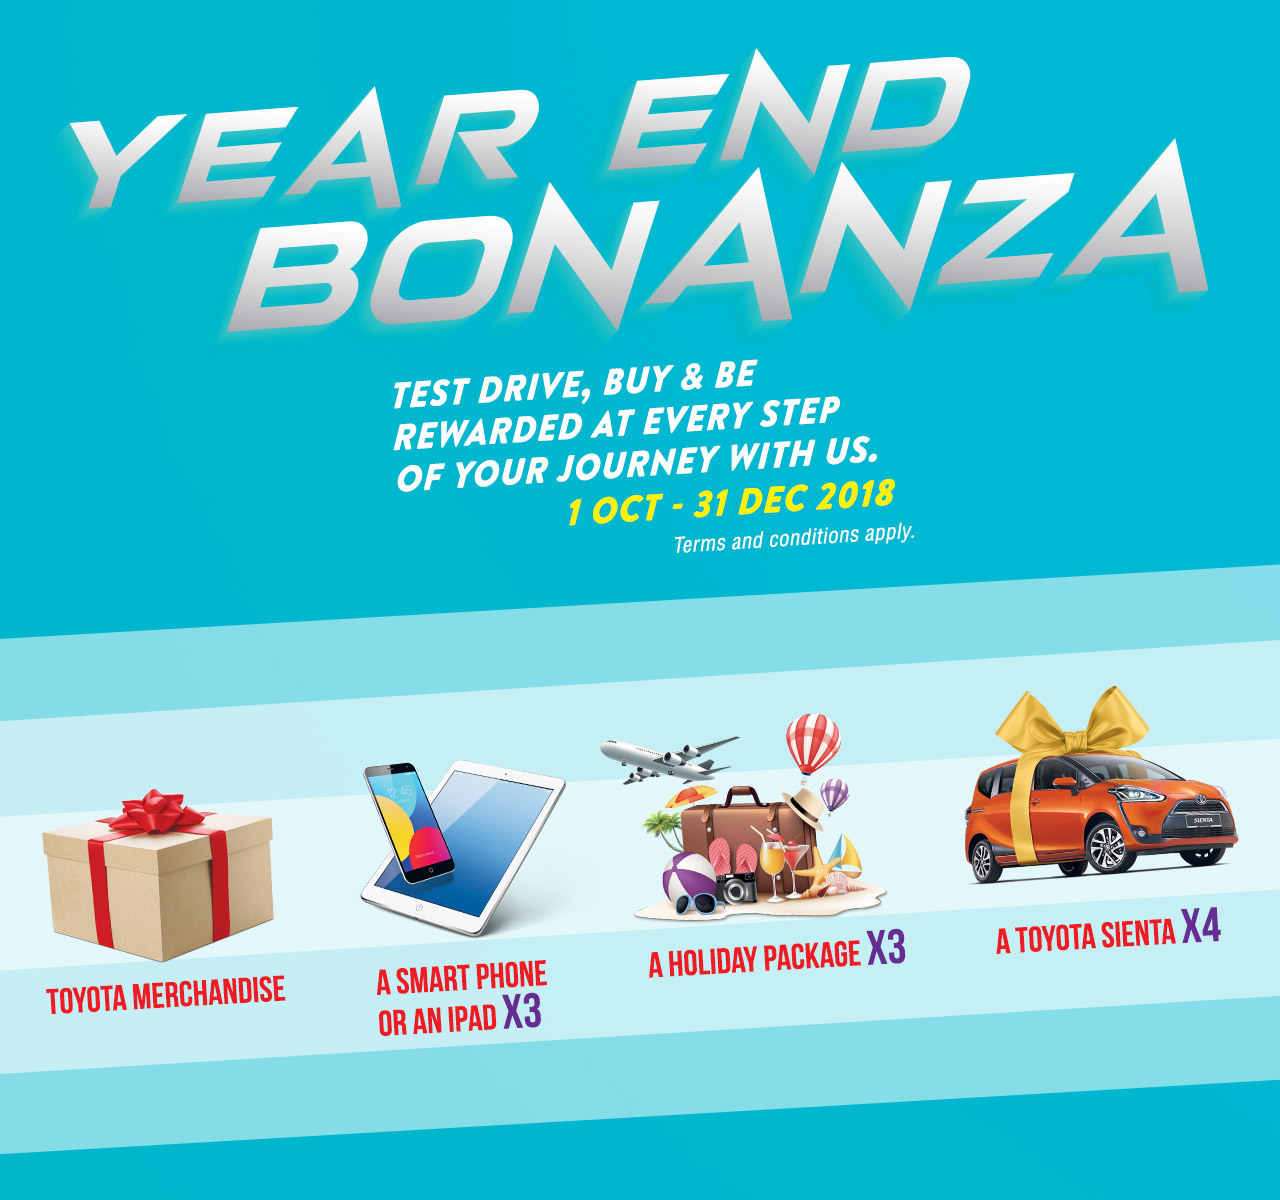 Info Harga Toyota Dealer Brisbane Southside Terbaru 2018. Toyota Malaysia All About The Drive Dealer Brisbane Southside Grab These Amazing Prizes. Wiring. Wiring Diagram Pioneer Avh 2800x At Scoala.co